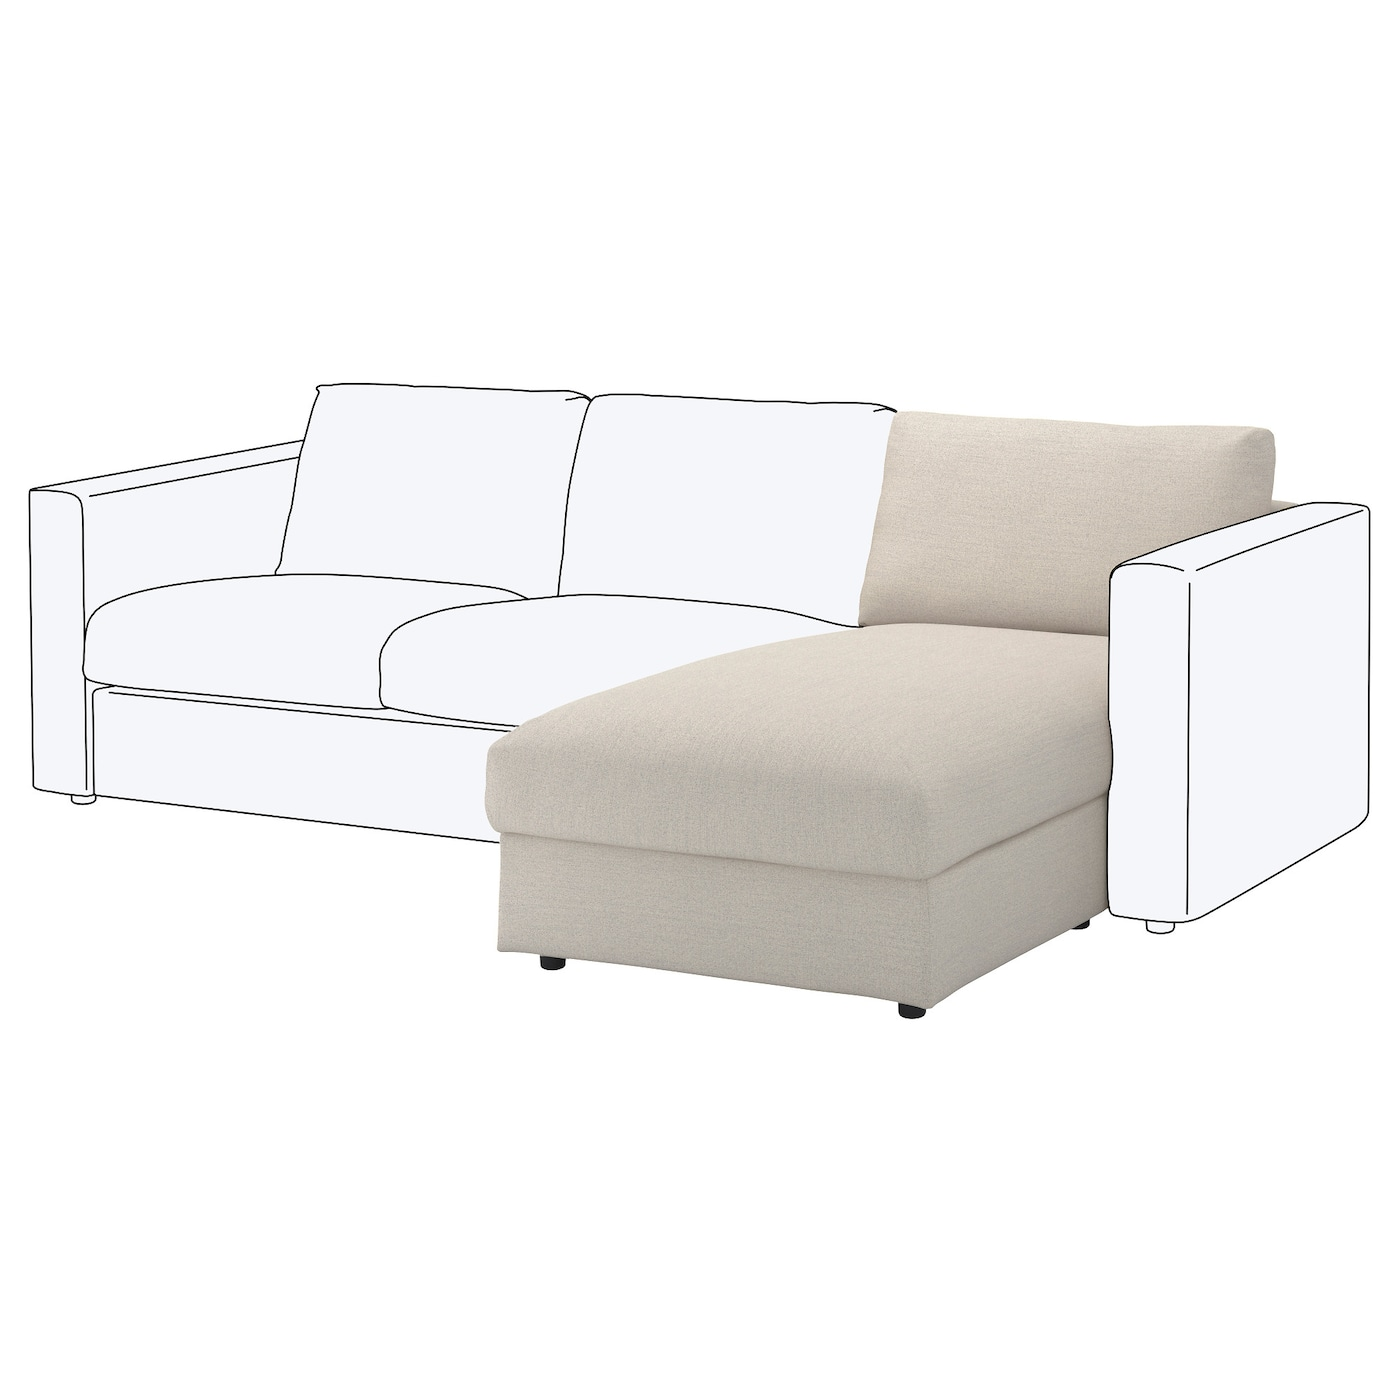 IKEA VIMLE chaise longue section